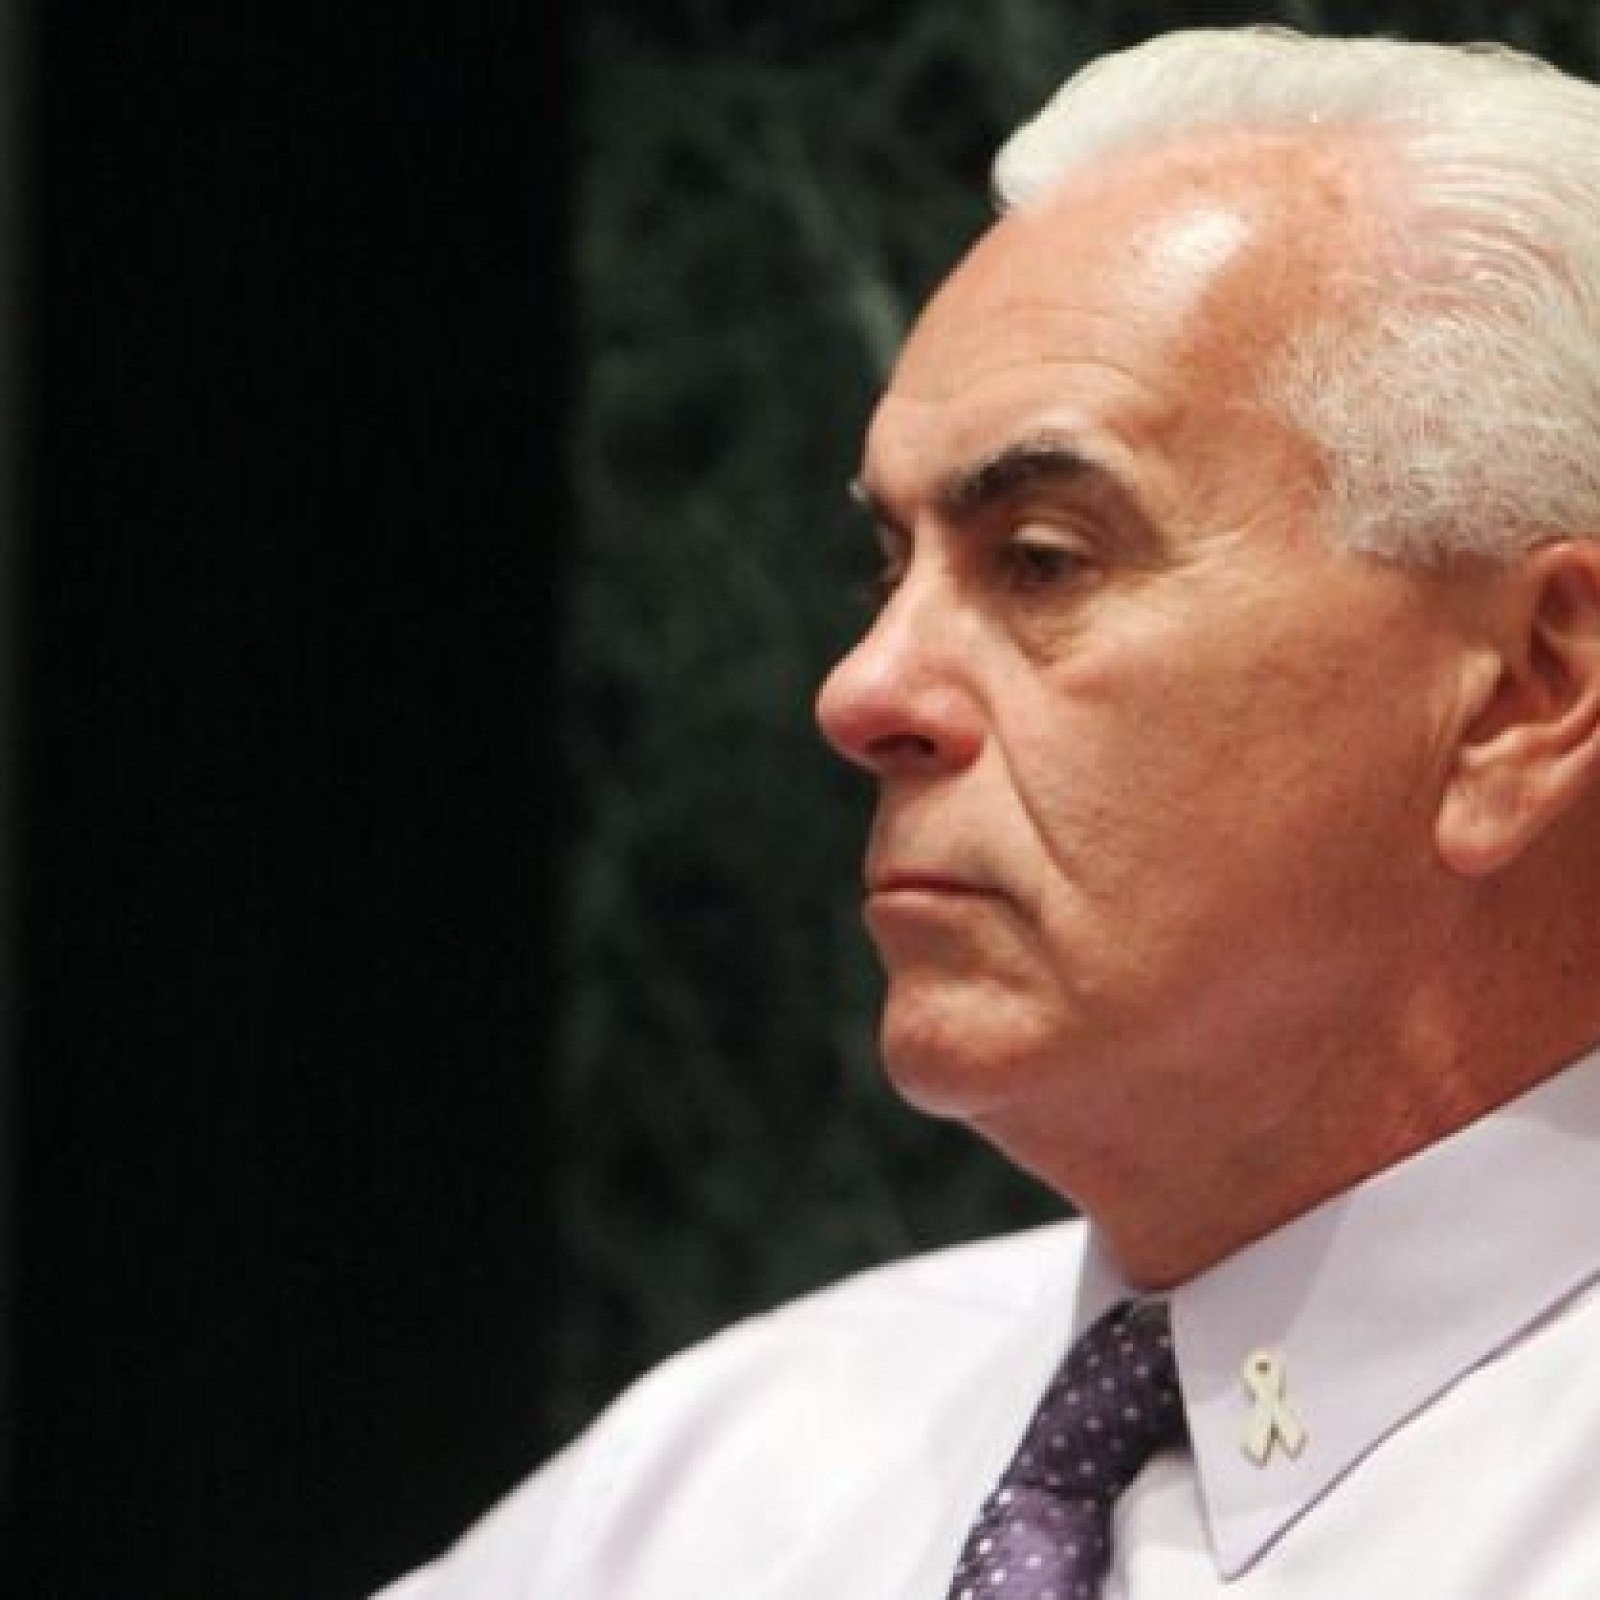 Casey Anthony's Father, George, Seriously Injured in Florida